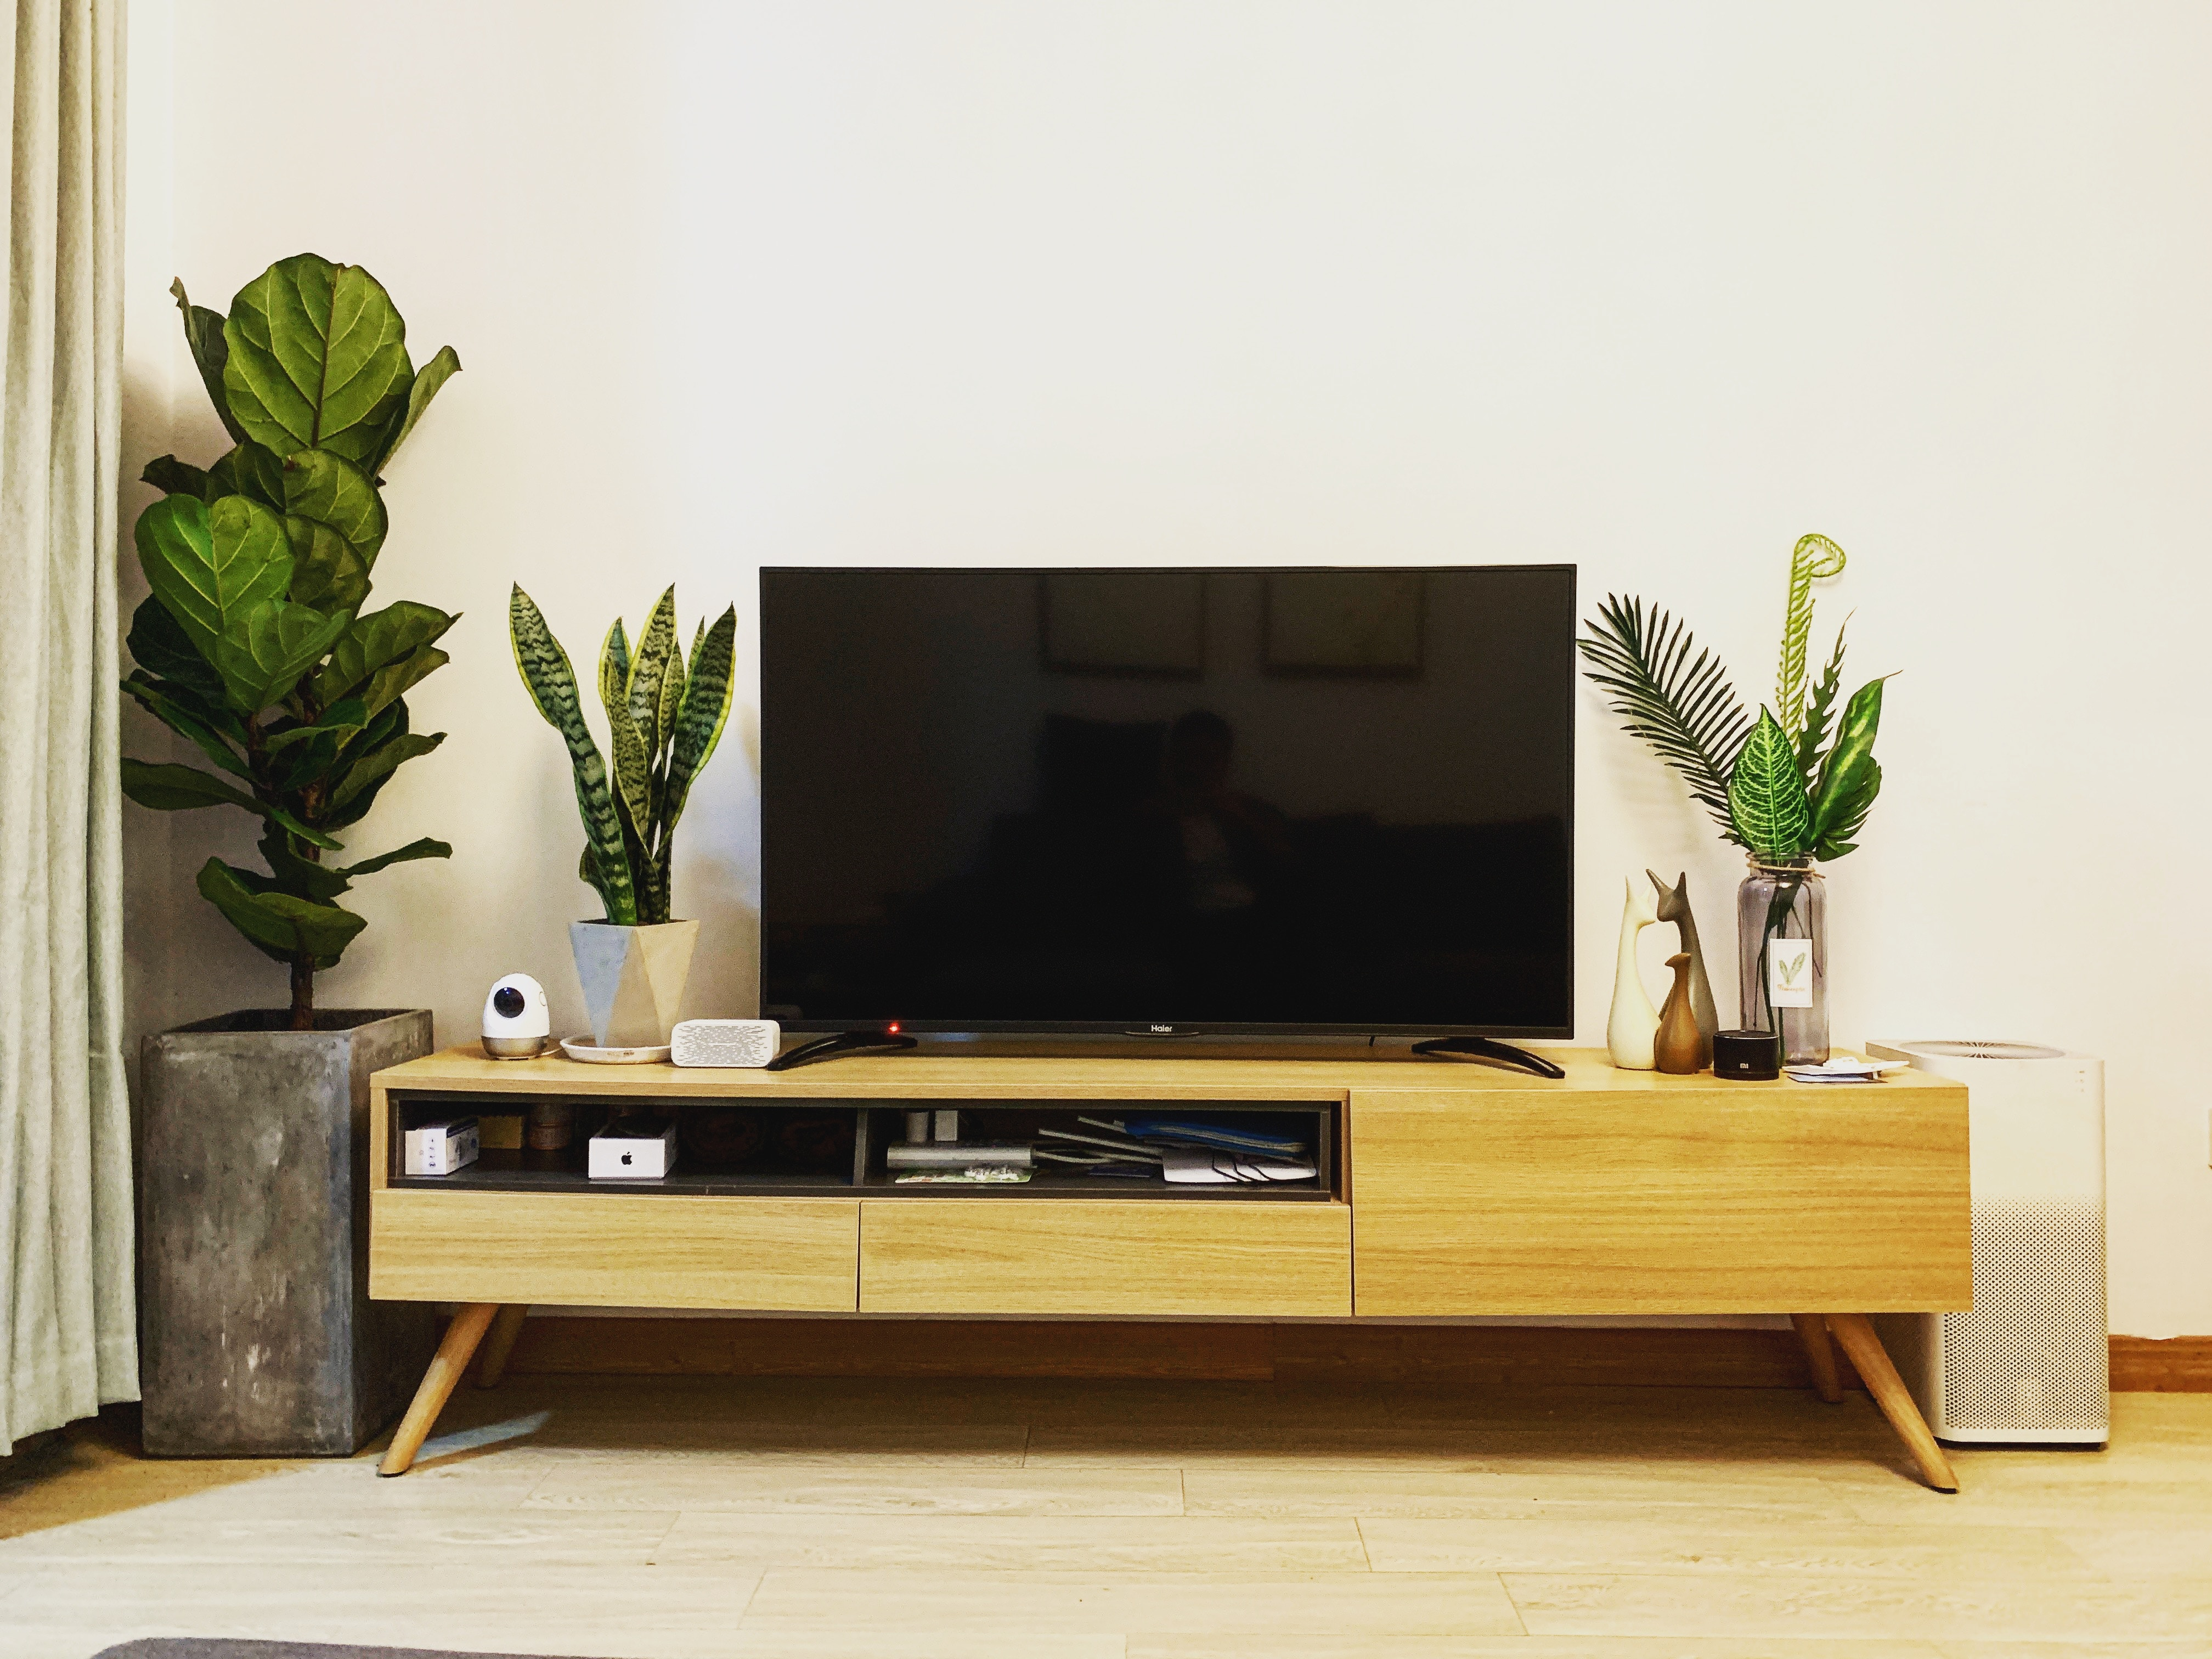 Features to Look For When Buying TV Set